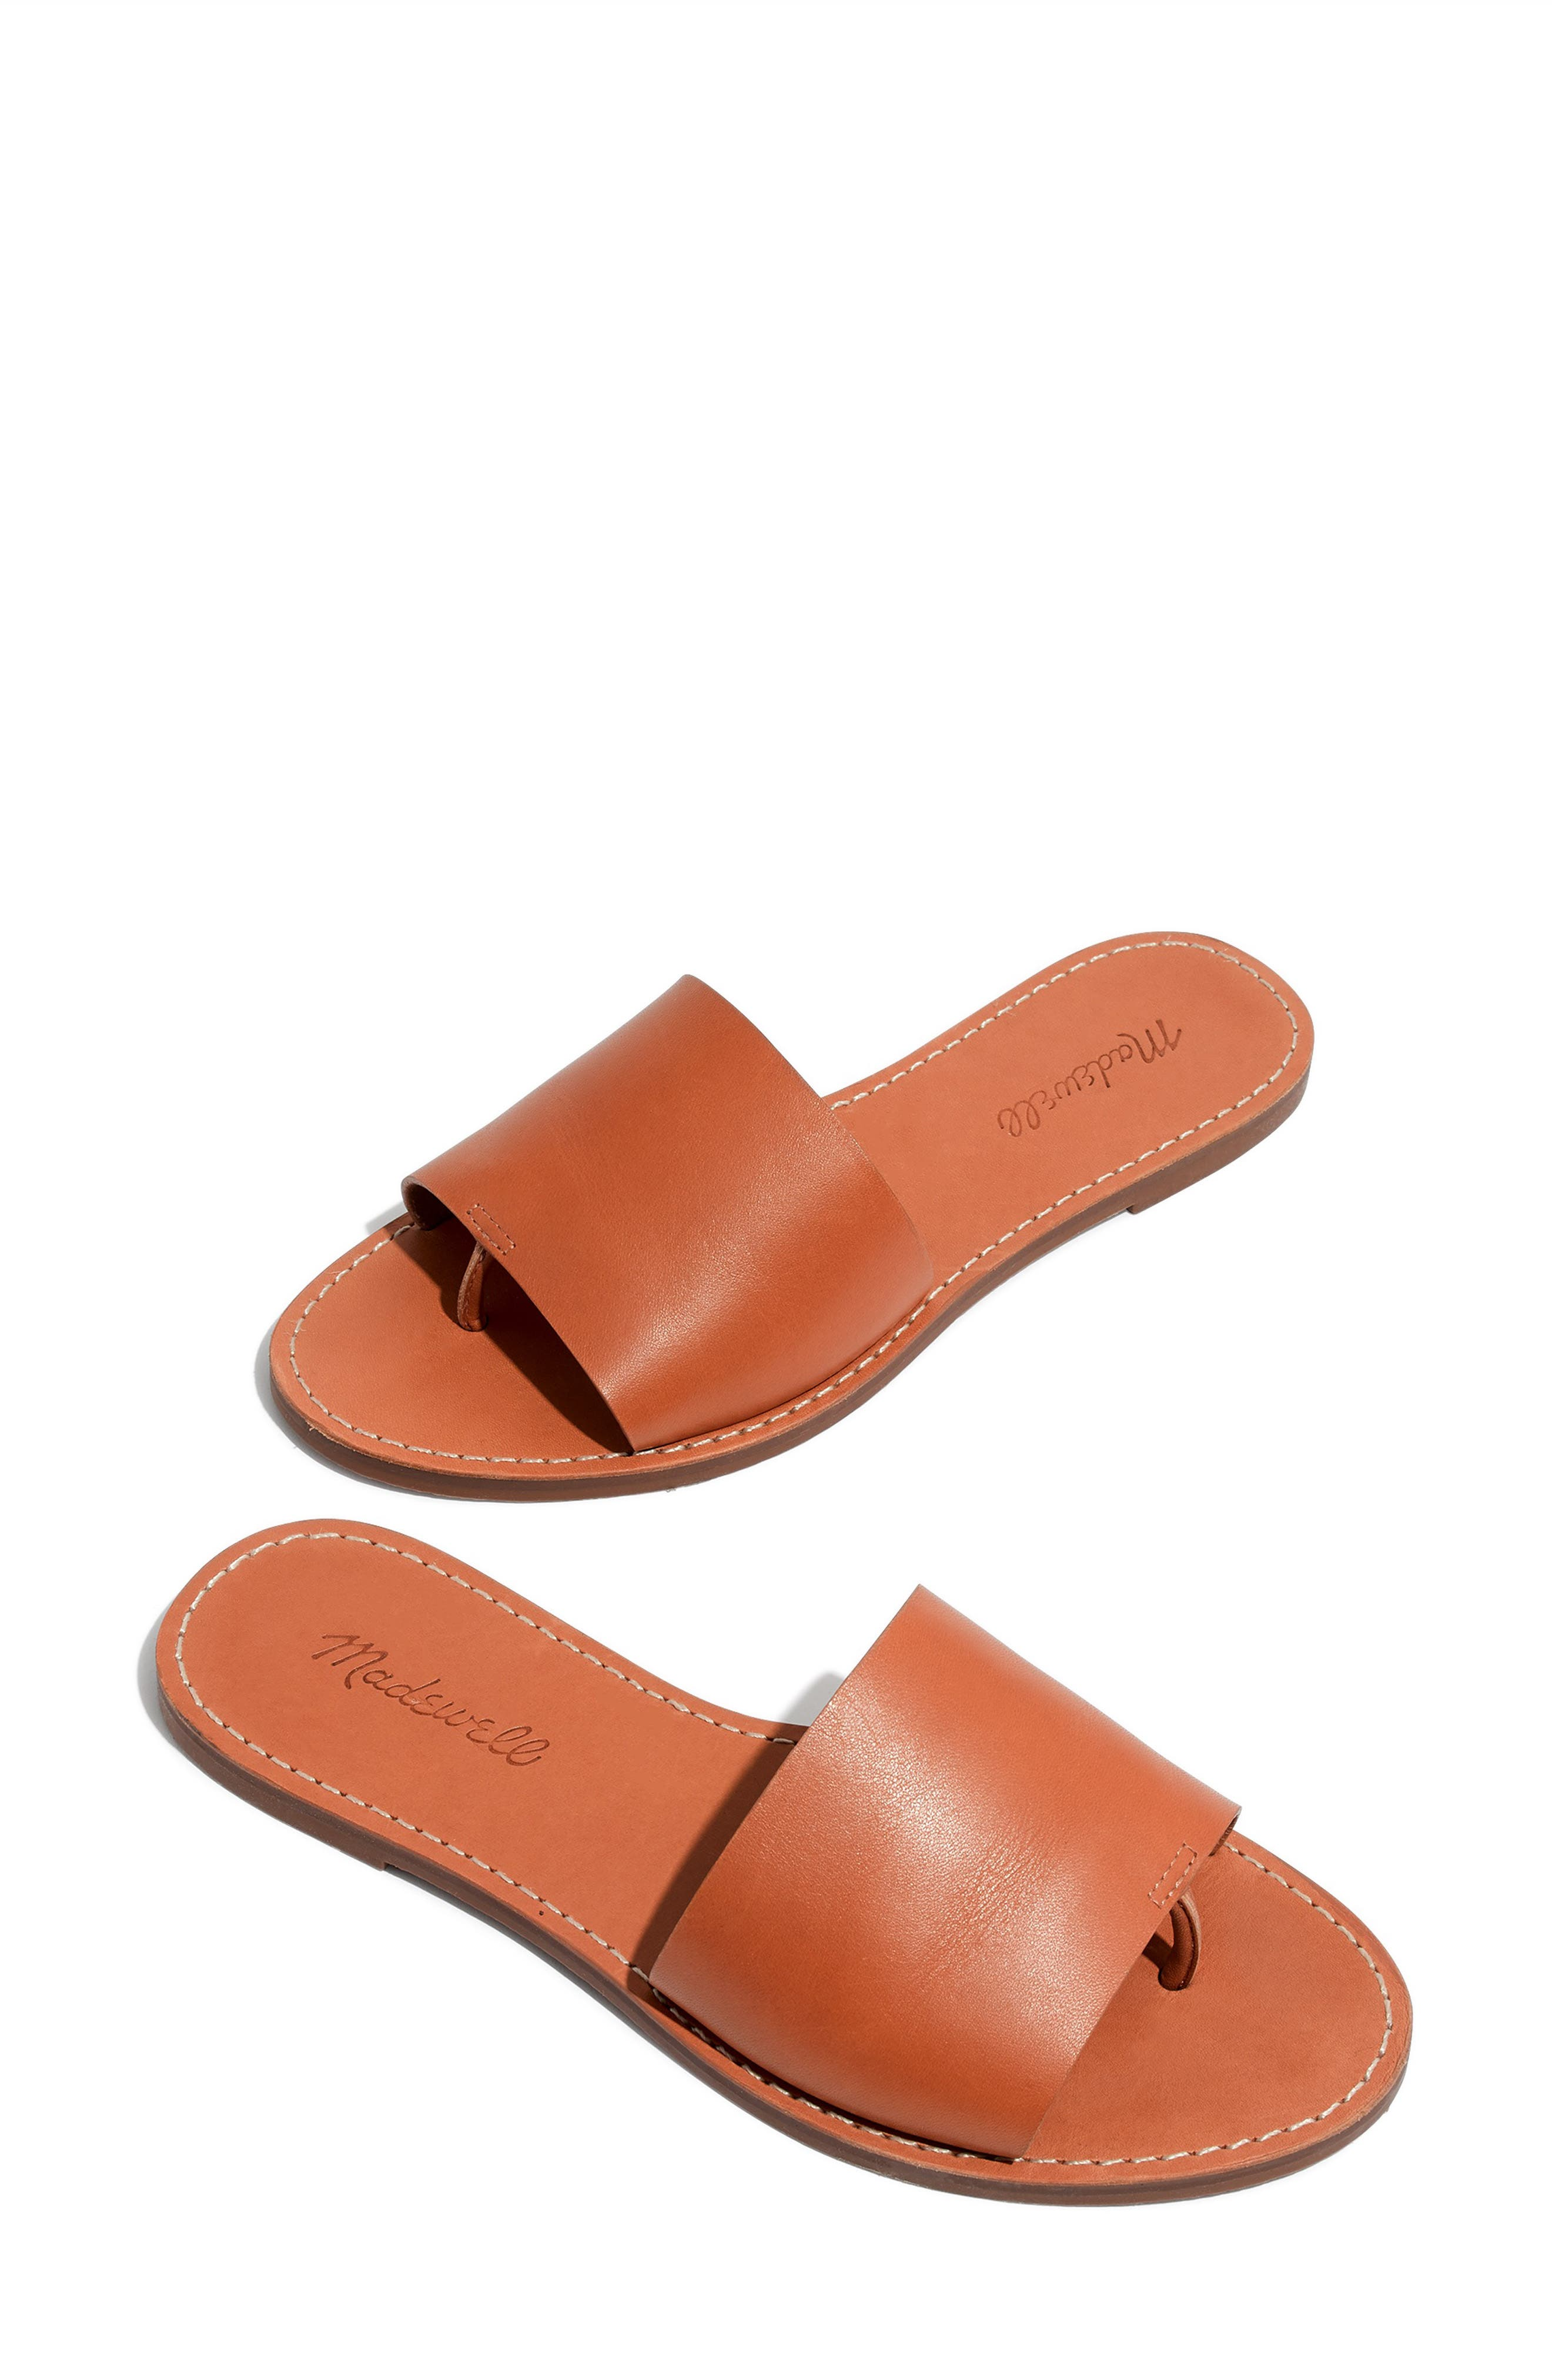 c0ee0b1dab7 Women s Madewell Sandals